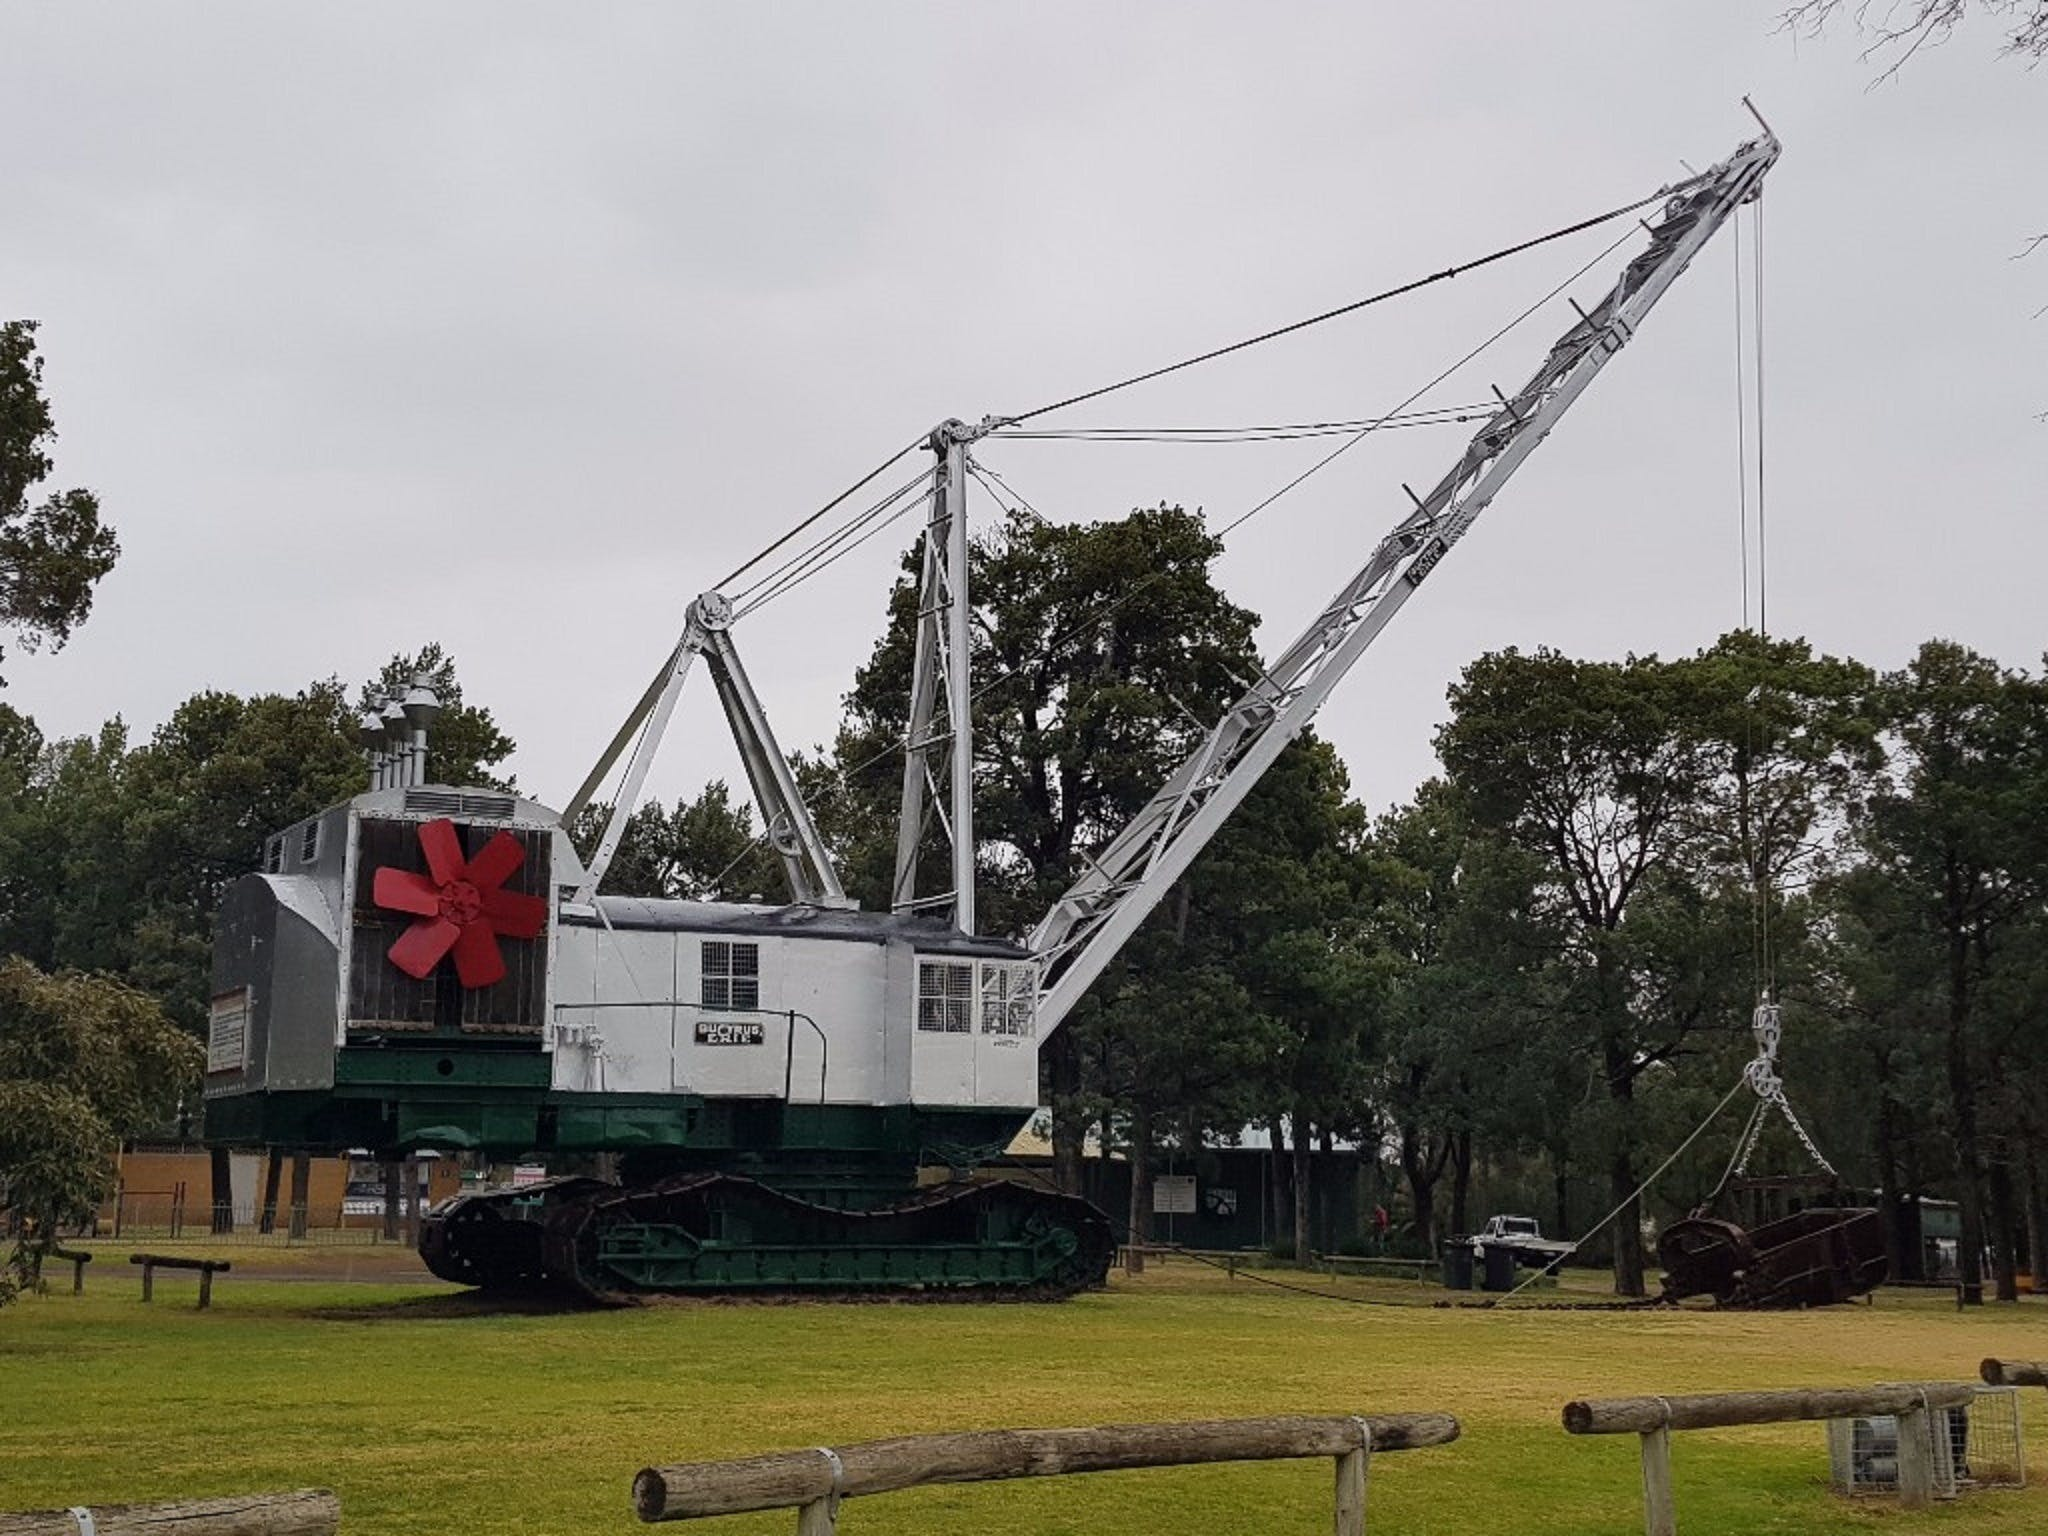 Coleambally Bucyrus Erie Dragline Excavator - Tourism Gold Coast